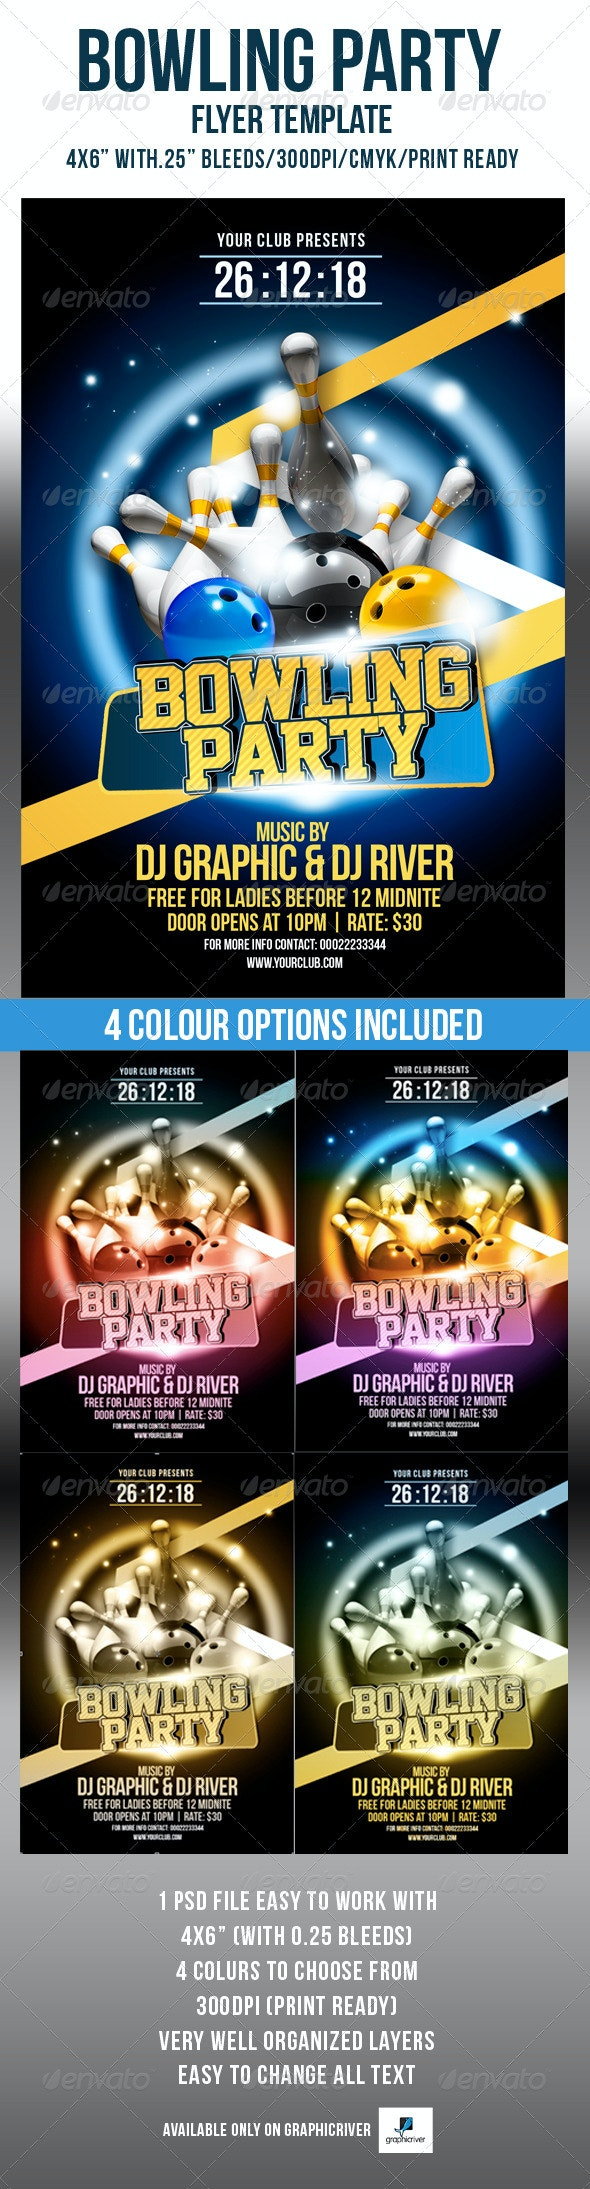 Bowling Party Flyer Template - Flyers Print Templates